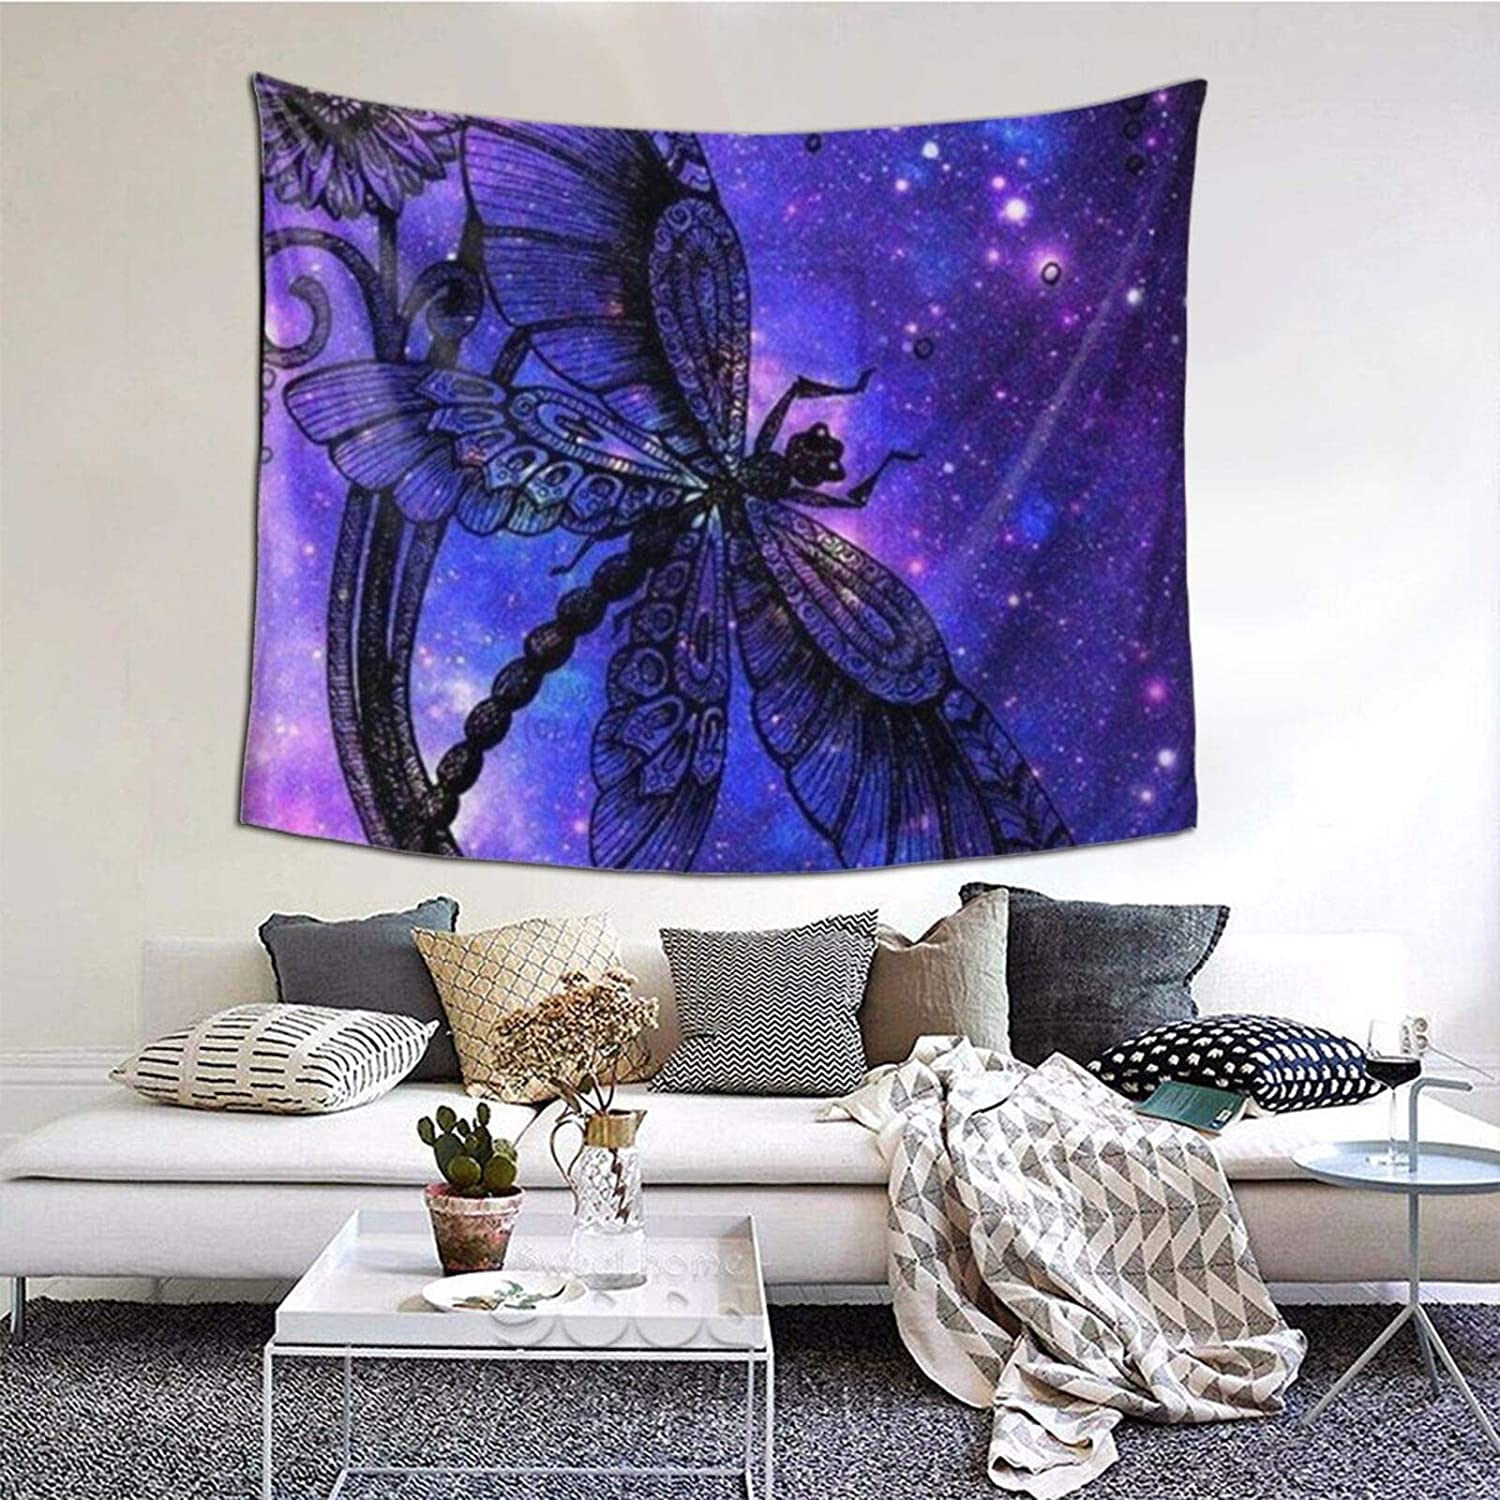 Tapestry, Bohemian Poster Tapestry Wall Hanging 51x60 Inch Boho Tapestry Hippie Hippy Purple Dragonfly Art Tapestry Beach Coverlet Curtain Queen Size for Yoga Room Office Decor